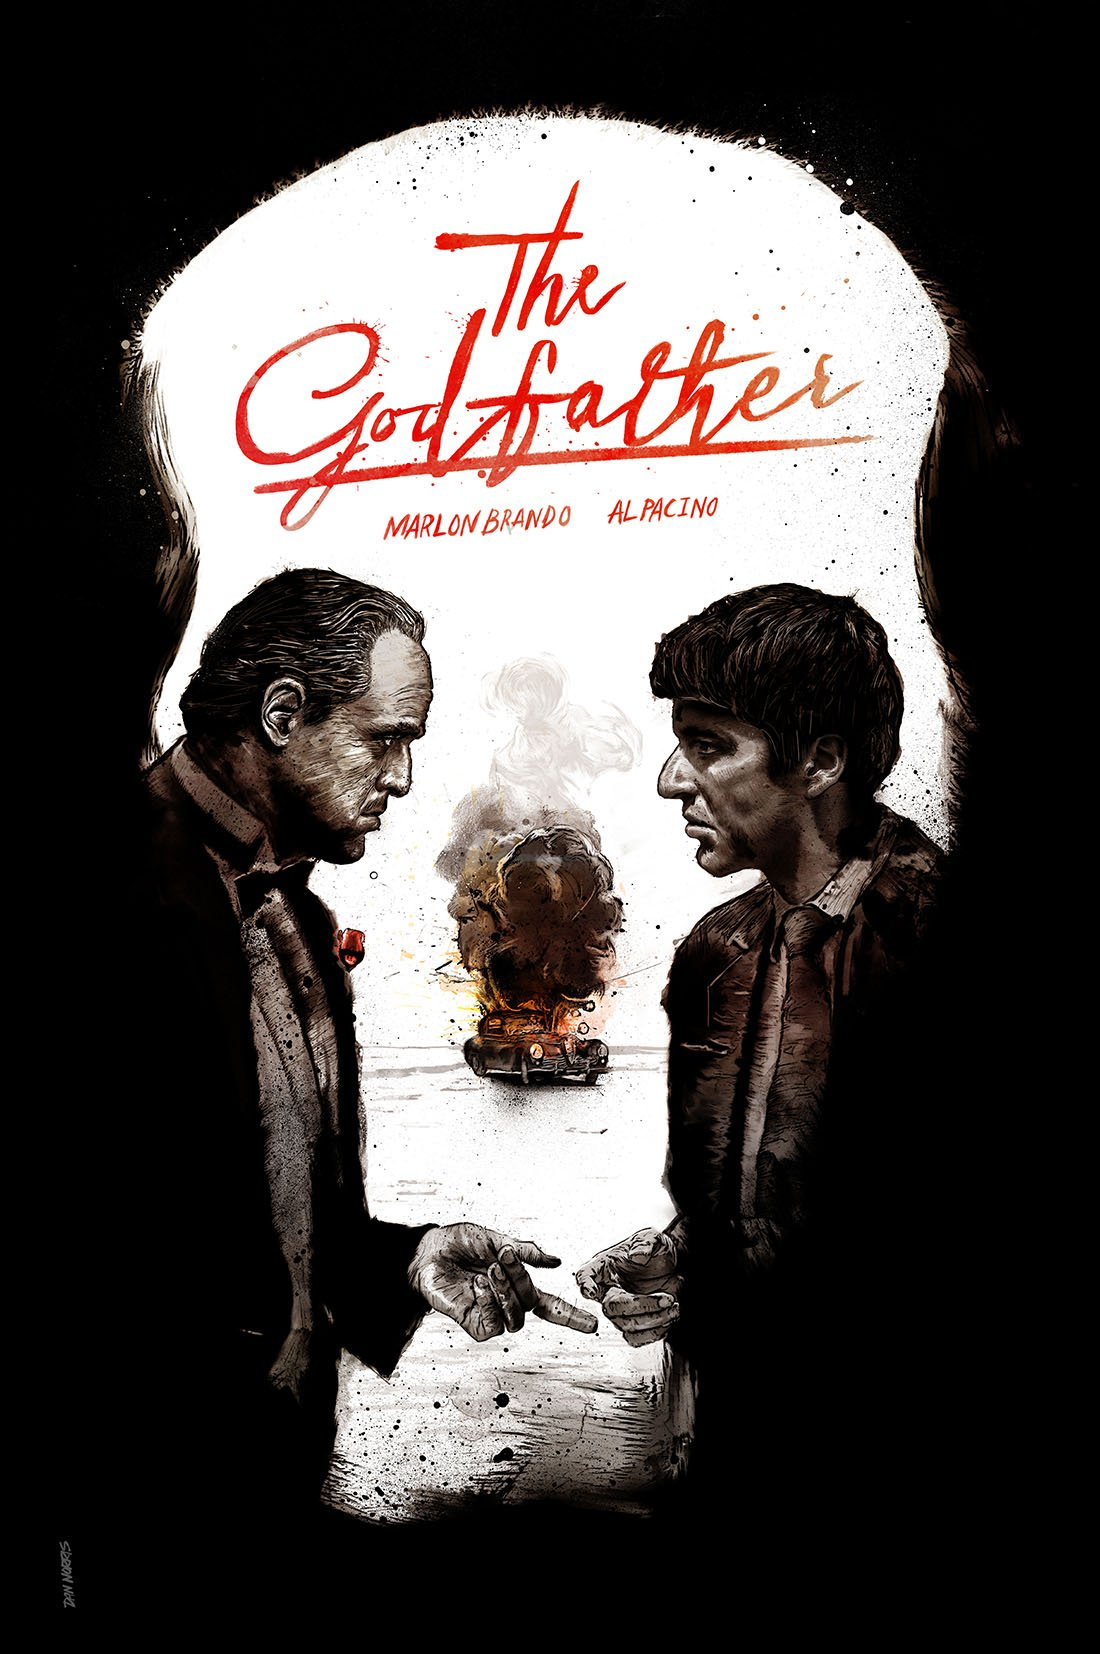 The godfather 1972 movie poster